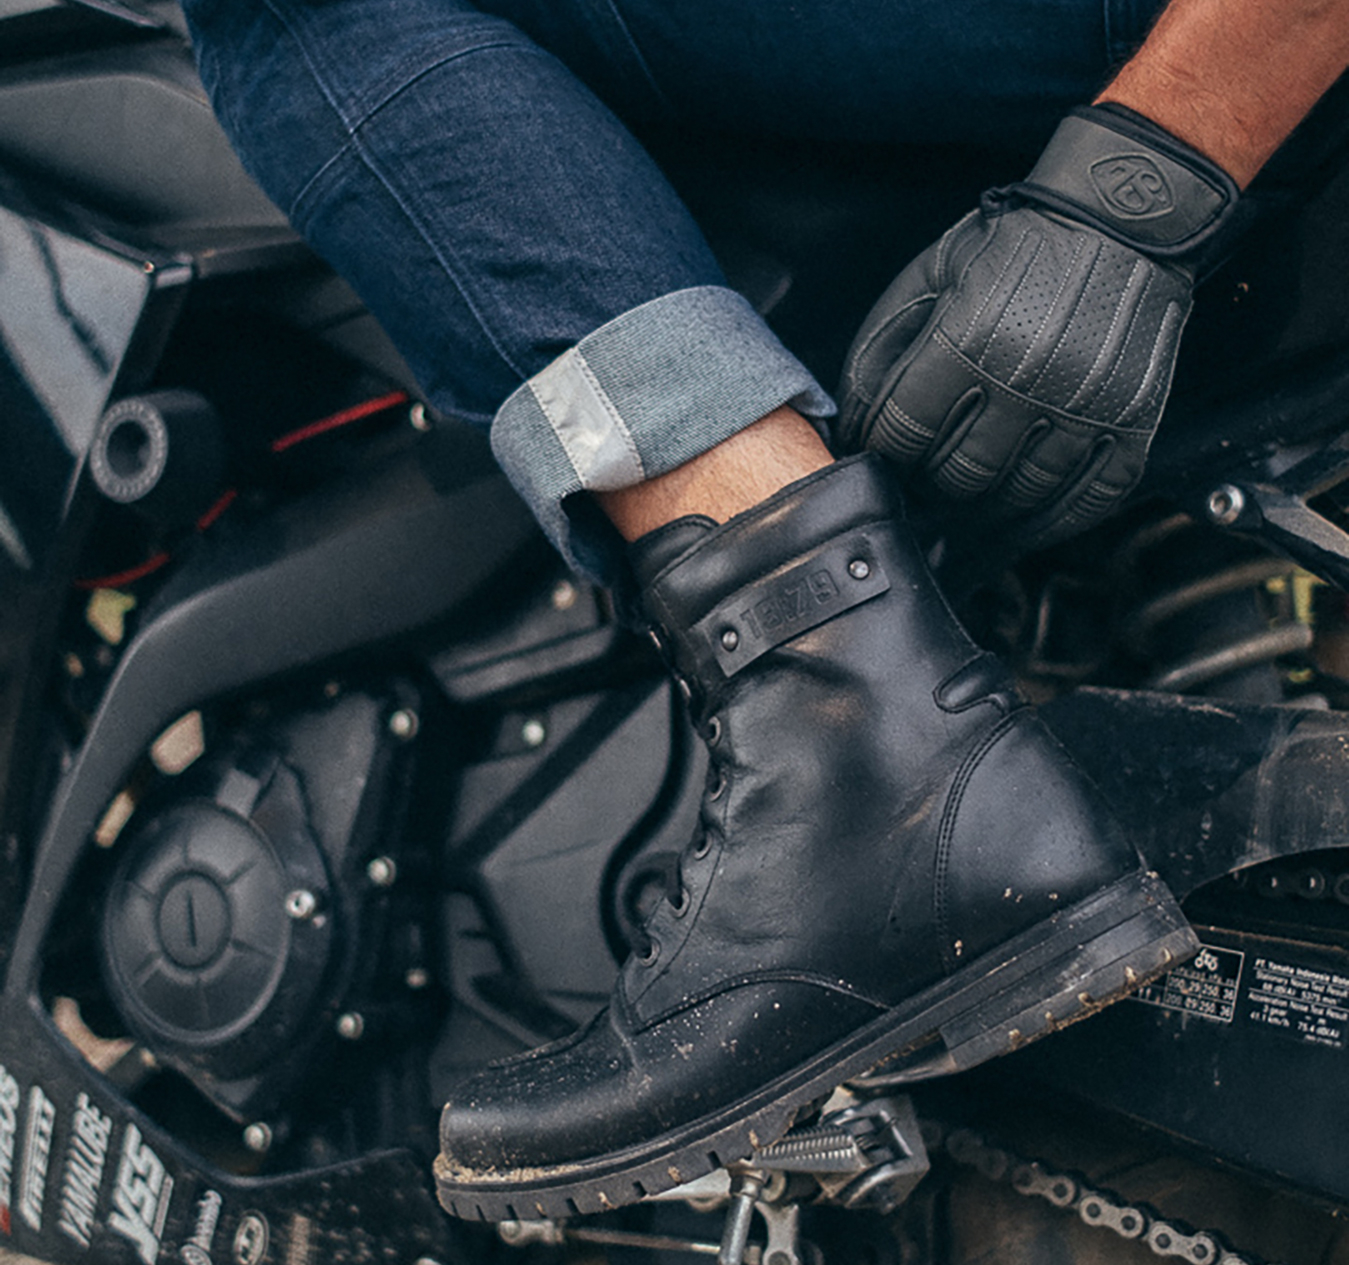 5 suggestions to wear motorcycle boots